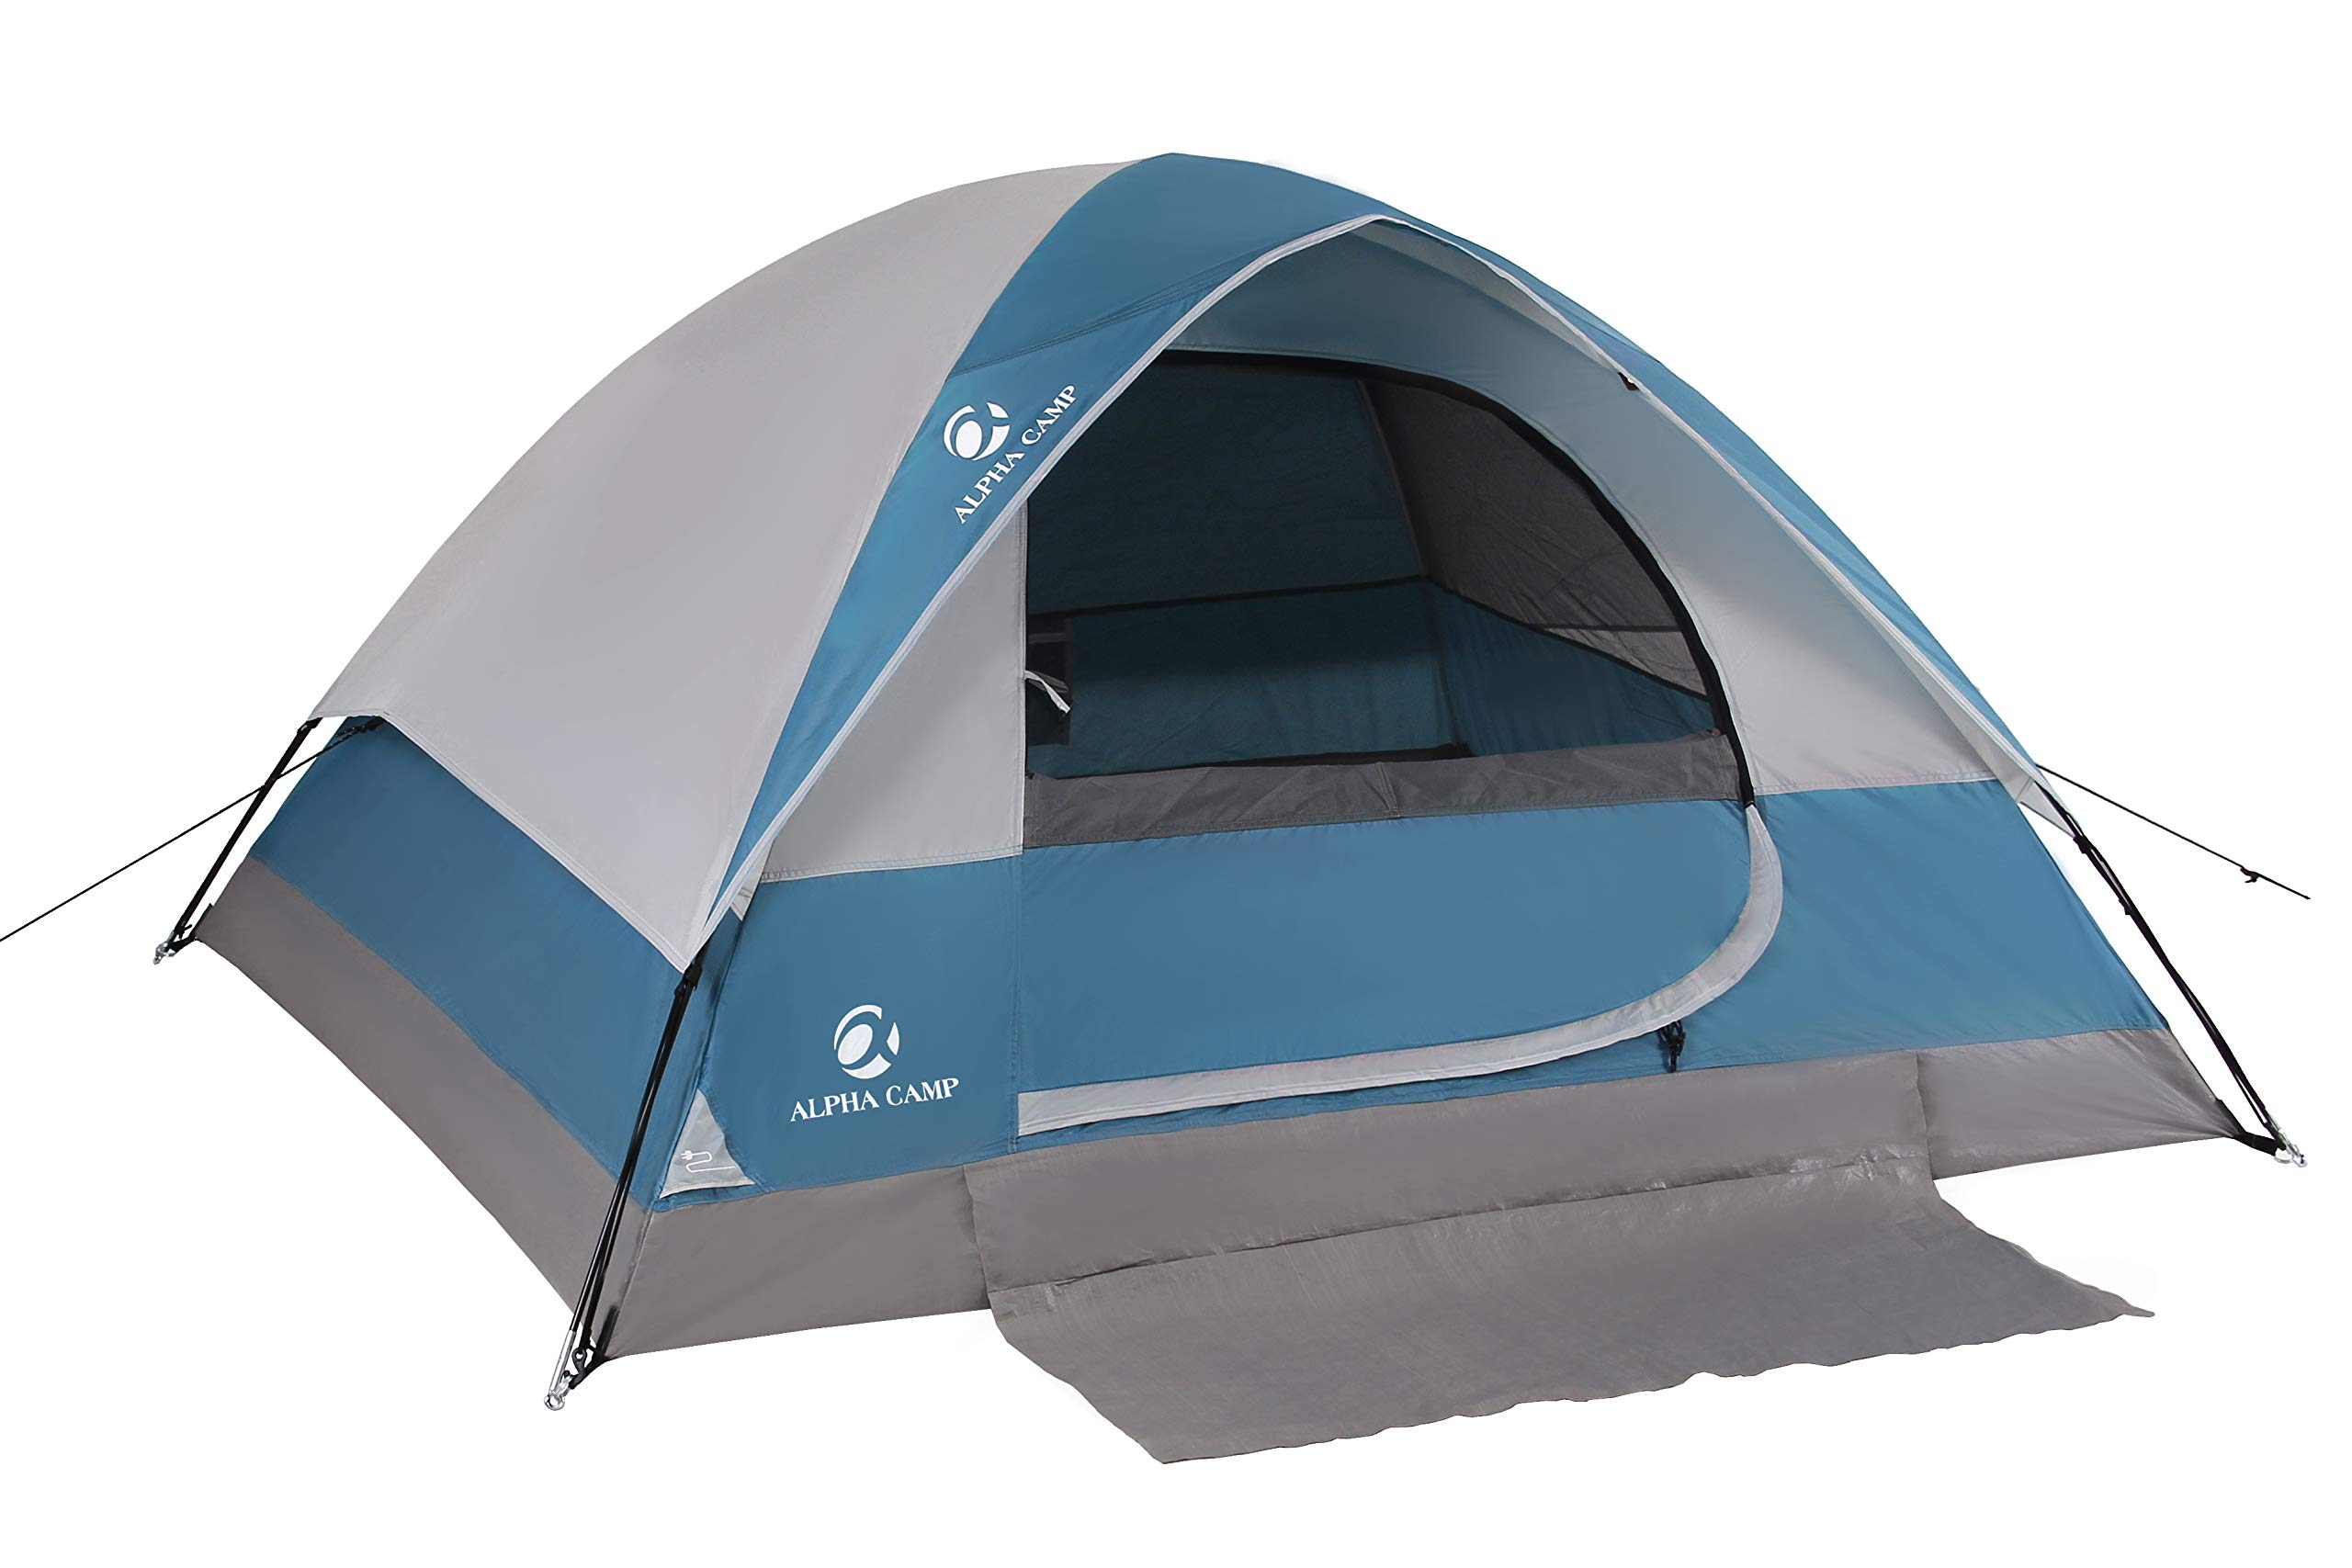 ALPHA-CAMP-Dome-Tent-for-Camping-Easy-Setup-Tent-with-Foot-Mat